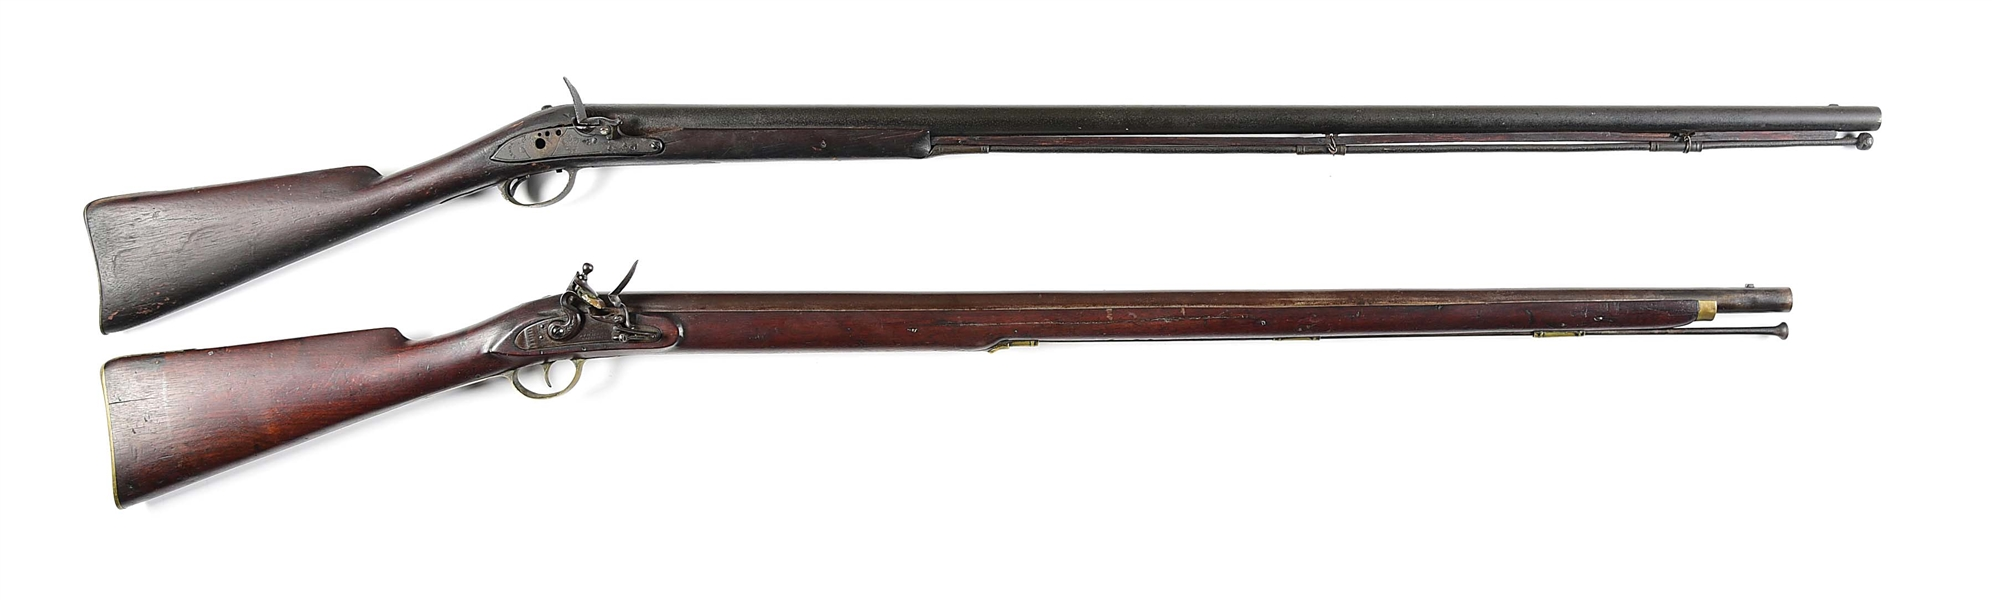 (A) LOT OF 2: ASHMORE WARRANTED FLINTLOCK RIFLE TOGETHER WITH A TOWER FLINTLOCK, TOWER MISSING PARTS.